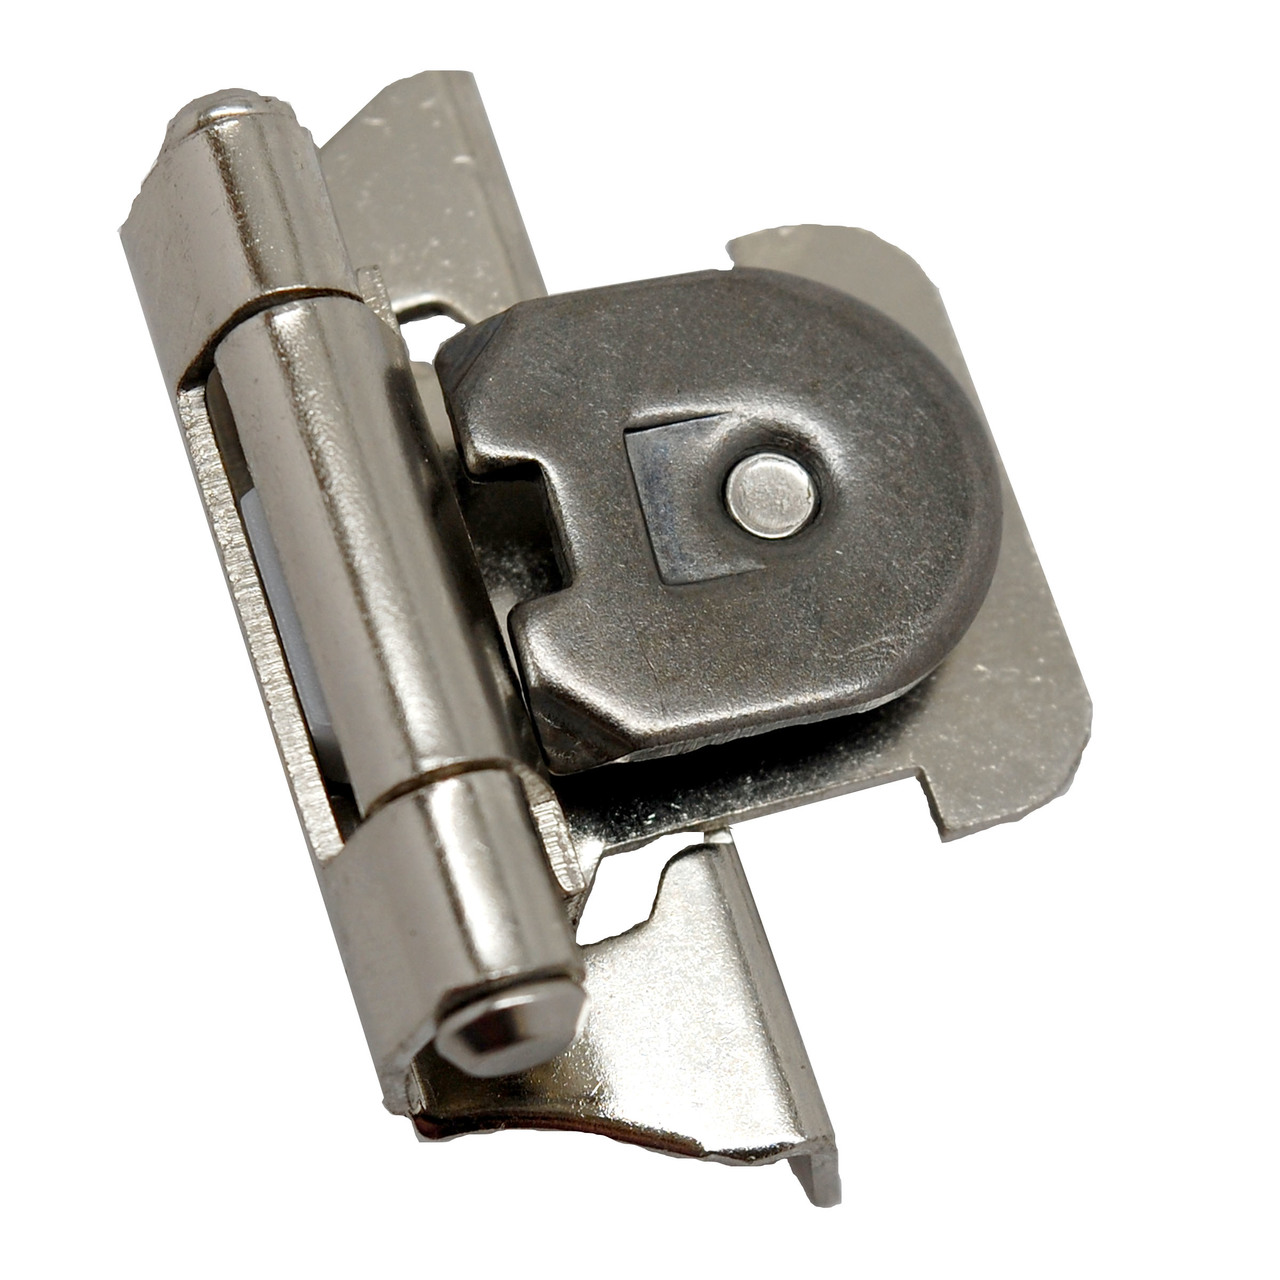 Amerock Nickel 1 4 Semi Wrap Single Demountable Hinge The Knob Shop